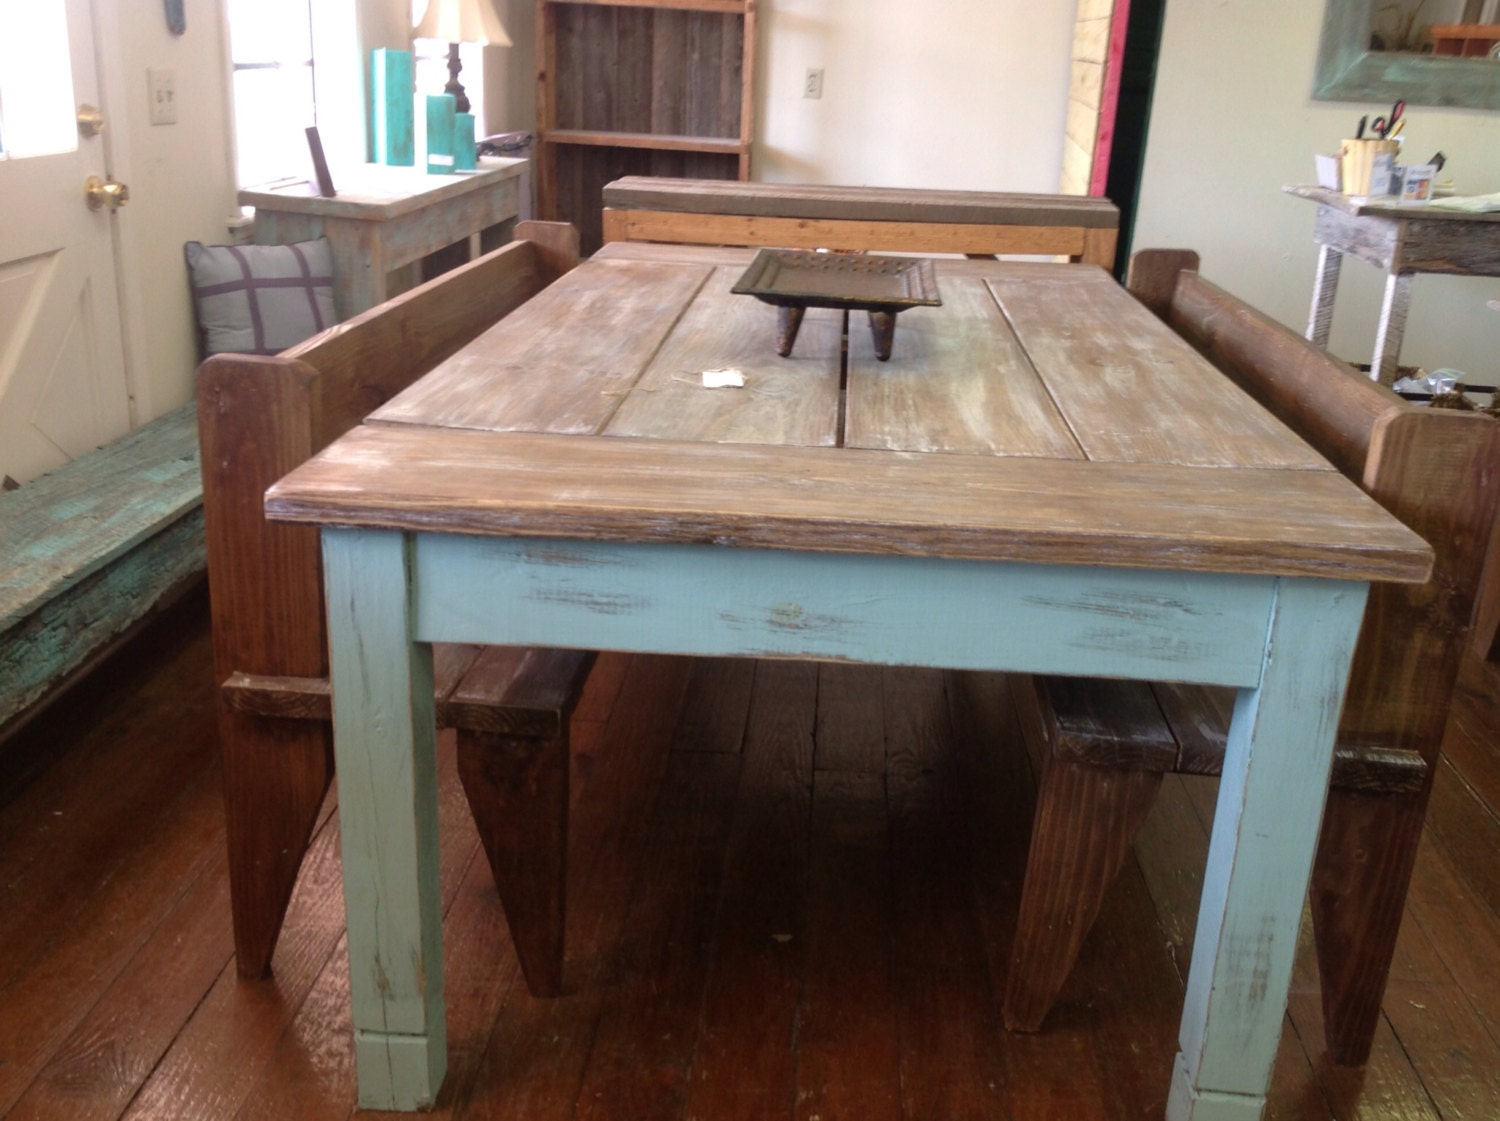 Antique farmhouse table - Large Farmhouse Table